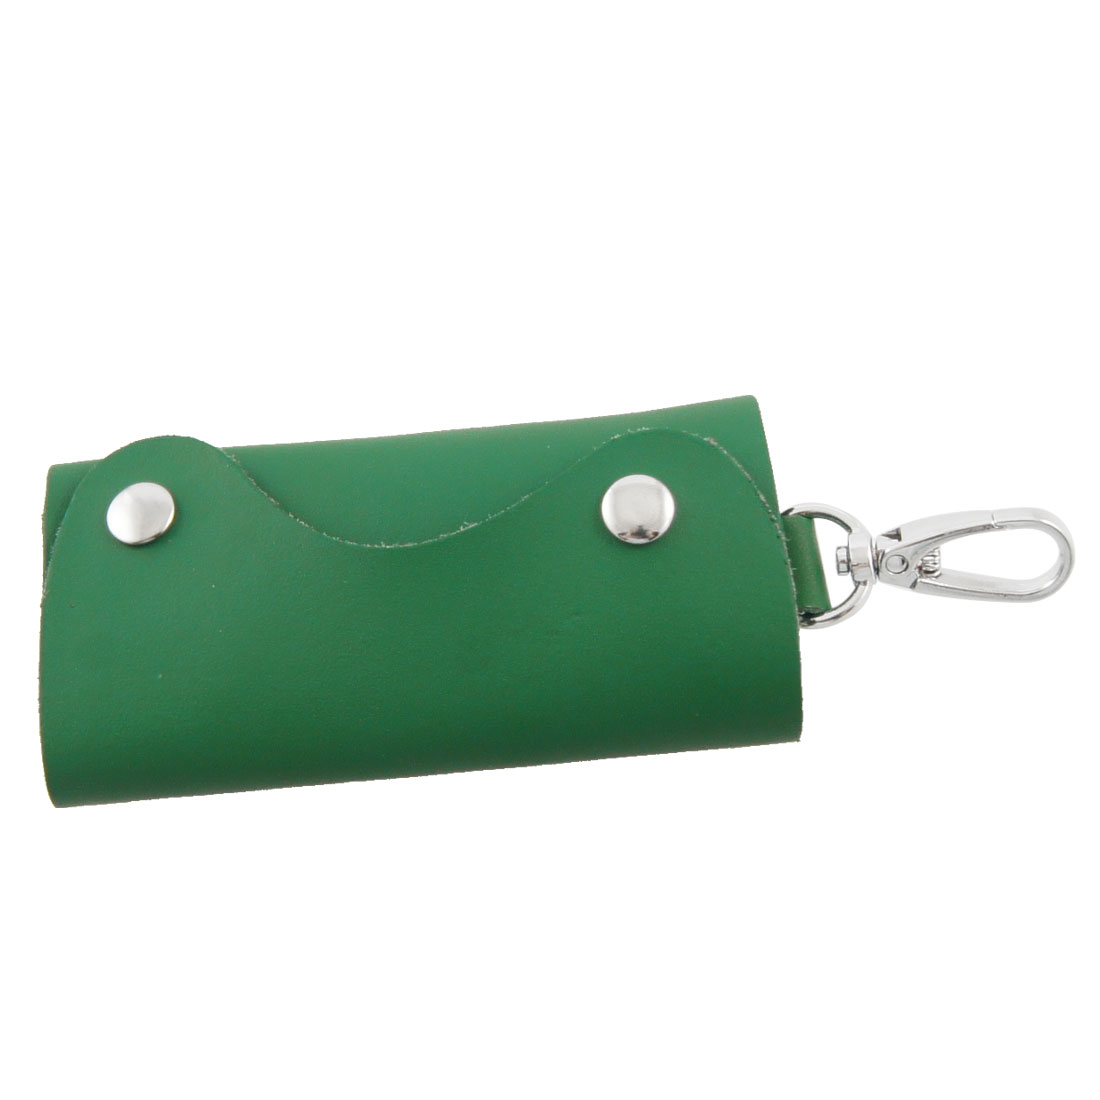 Green Faux Leather 5 Hooks Folding Key Organizer Holder